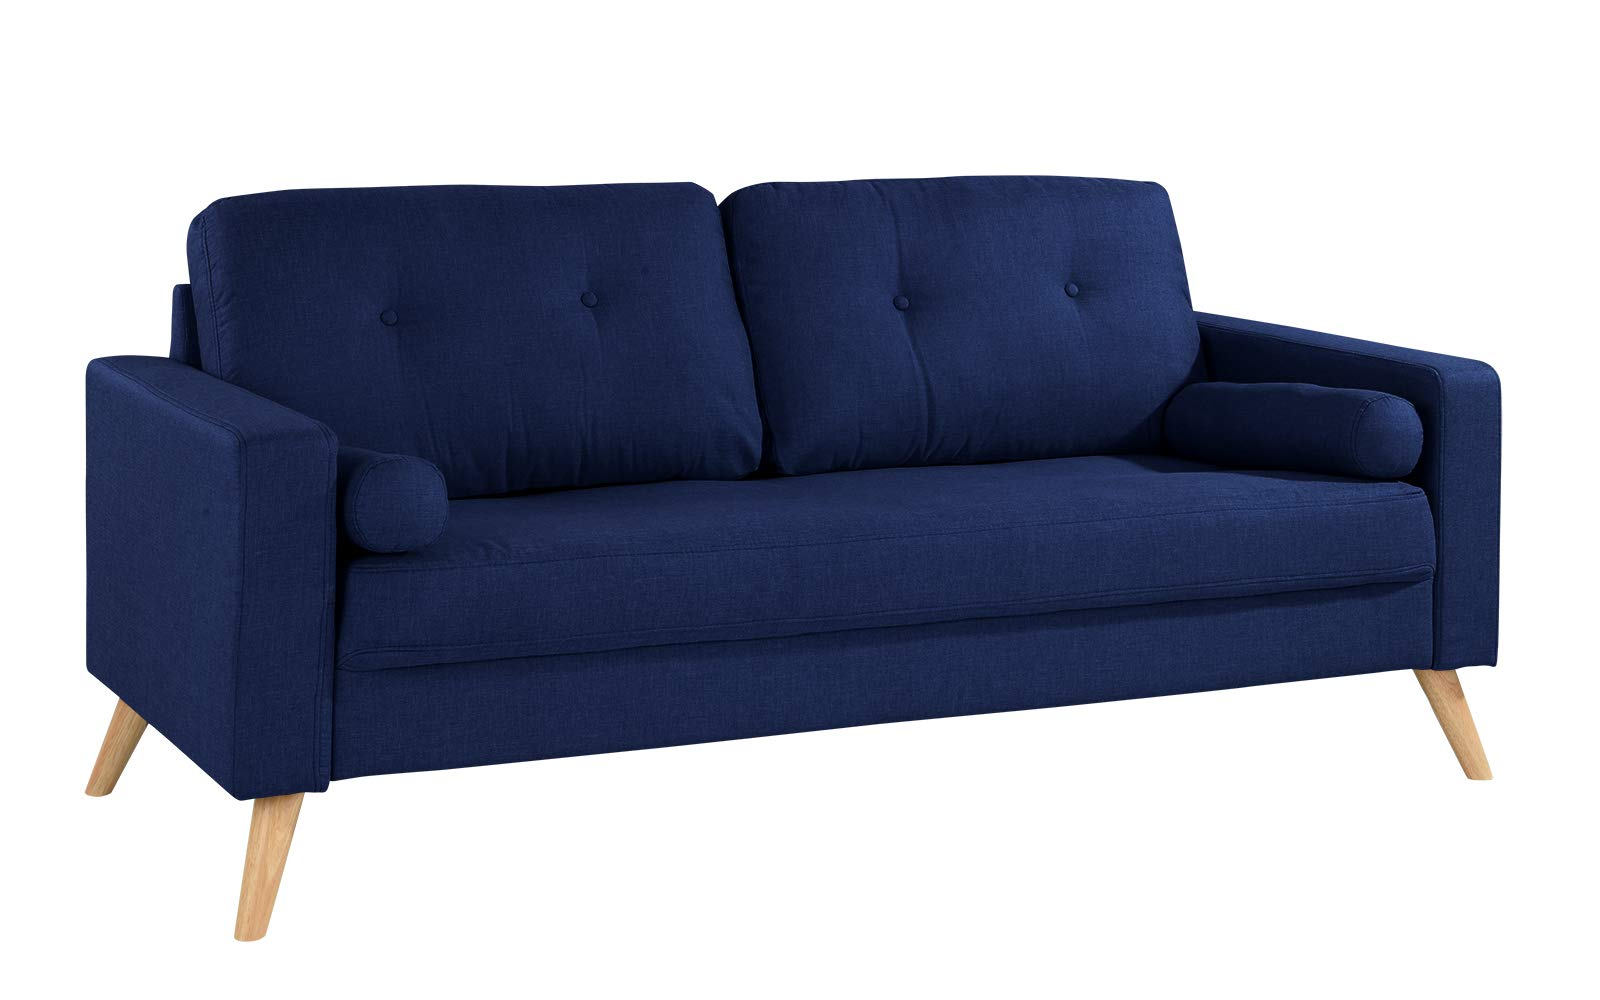 Modern Living Room Fabric Sofa, Couch with Tufted Buttons (Dark Blue) - Mid century modern linen fabric sofa couch with tufted button details. Upholstered in durable soft linen fabric featuring 2 accent bolster pillows in the same fabric. High density foam on seat for extra comfort. Small space couch, perfect for a studio apartment. - sofas-couches, living-room-furniture, living-room - 61YzXe0CAUL -